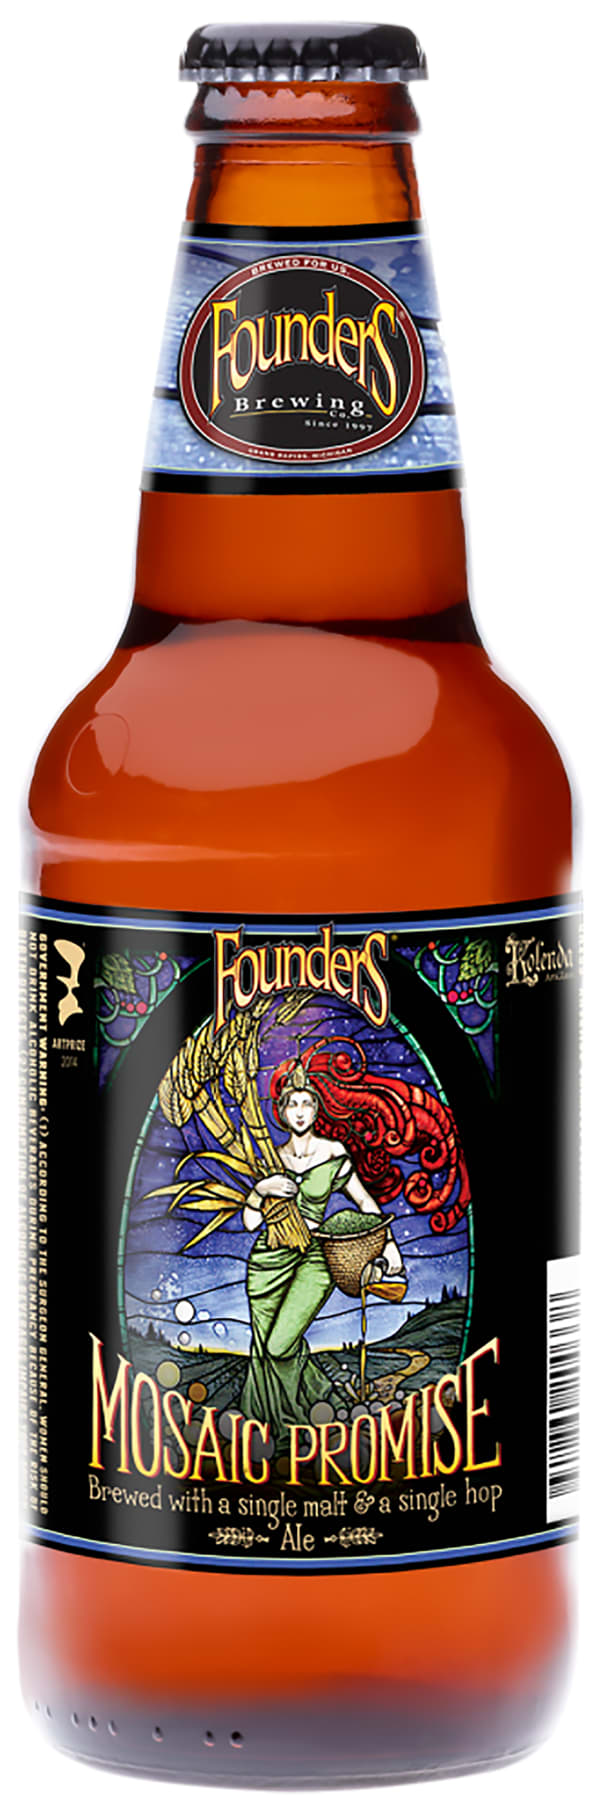 Founders Mosaic Promise